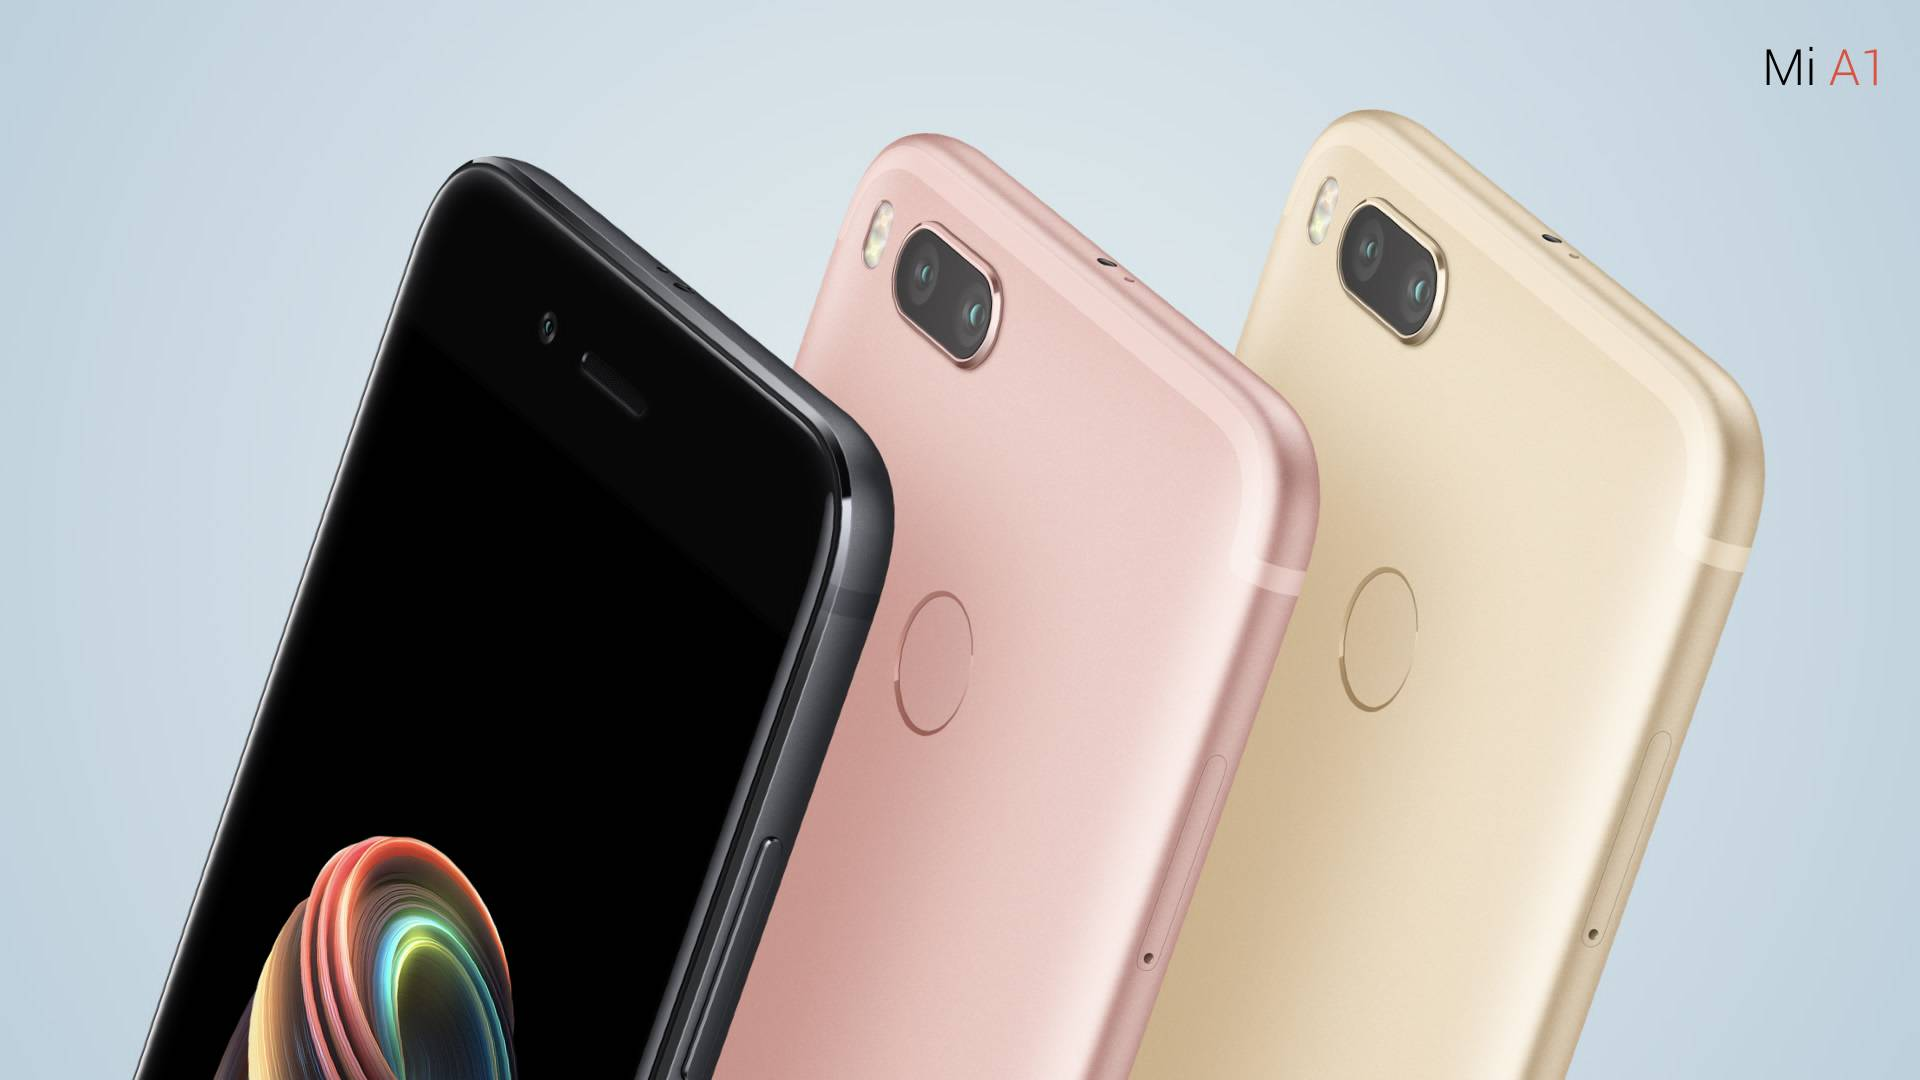 Xiaomi looking for stock Android Oreo beta testers for Mi A1